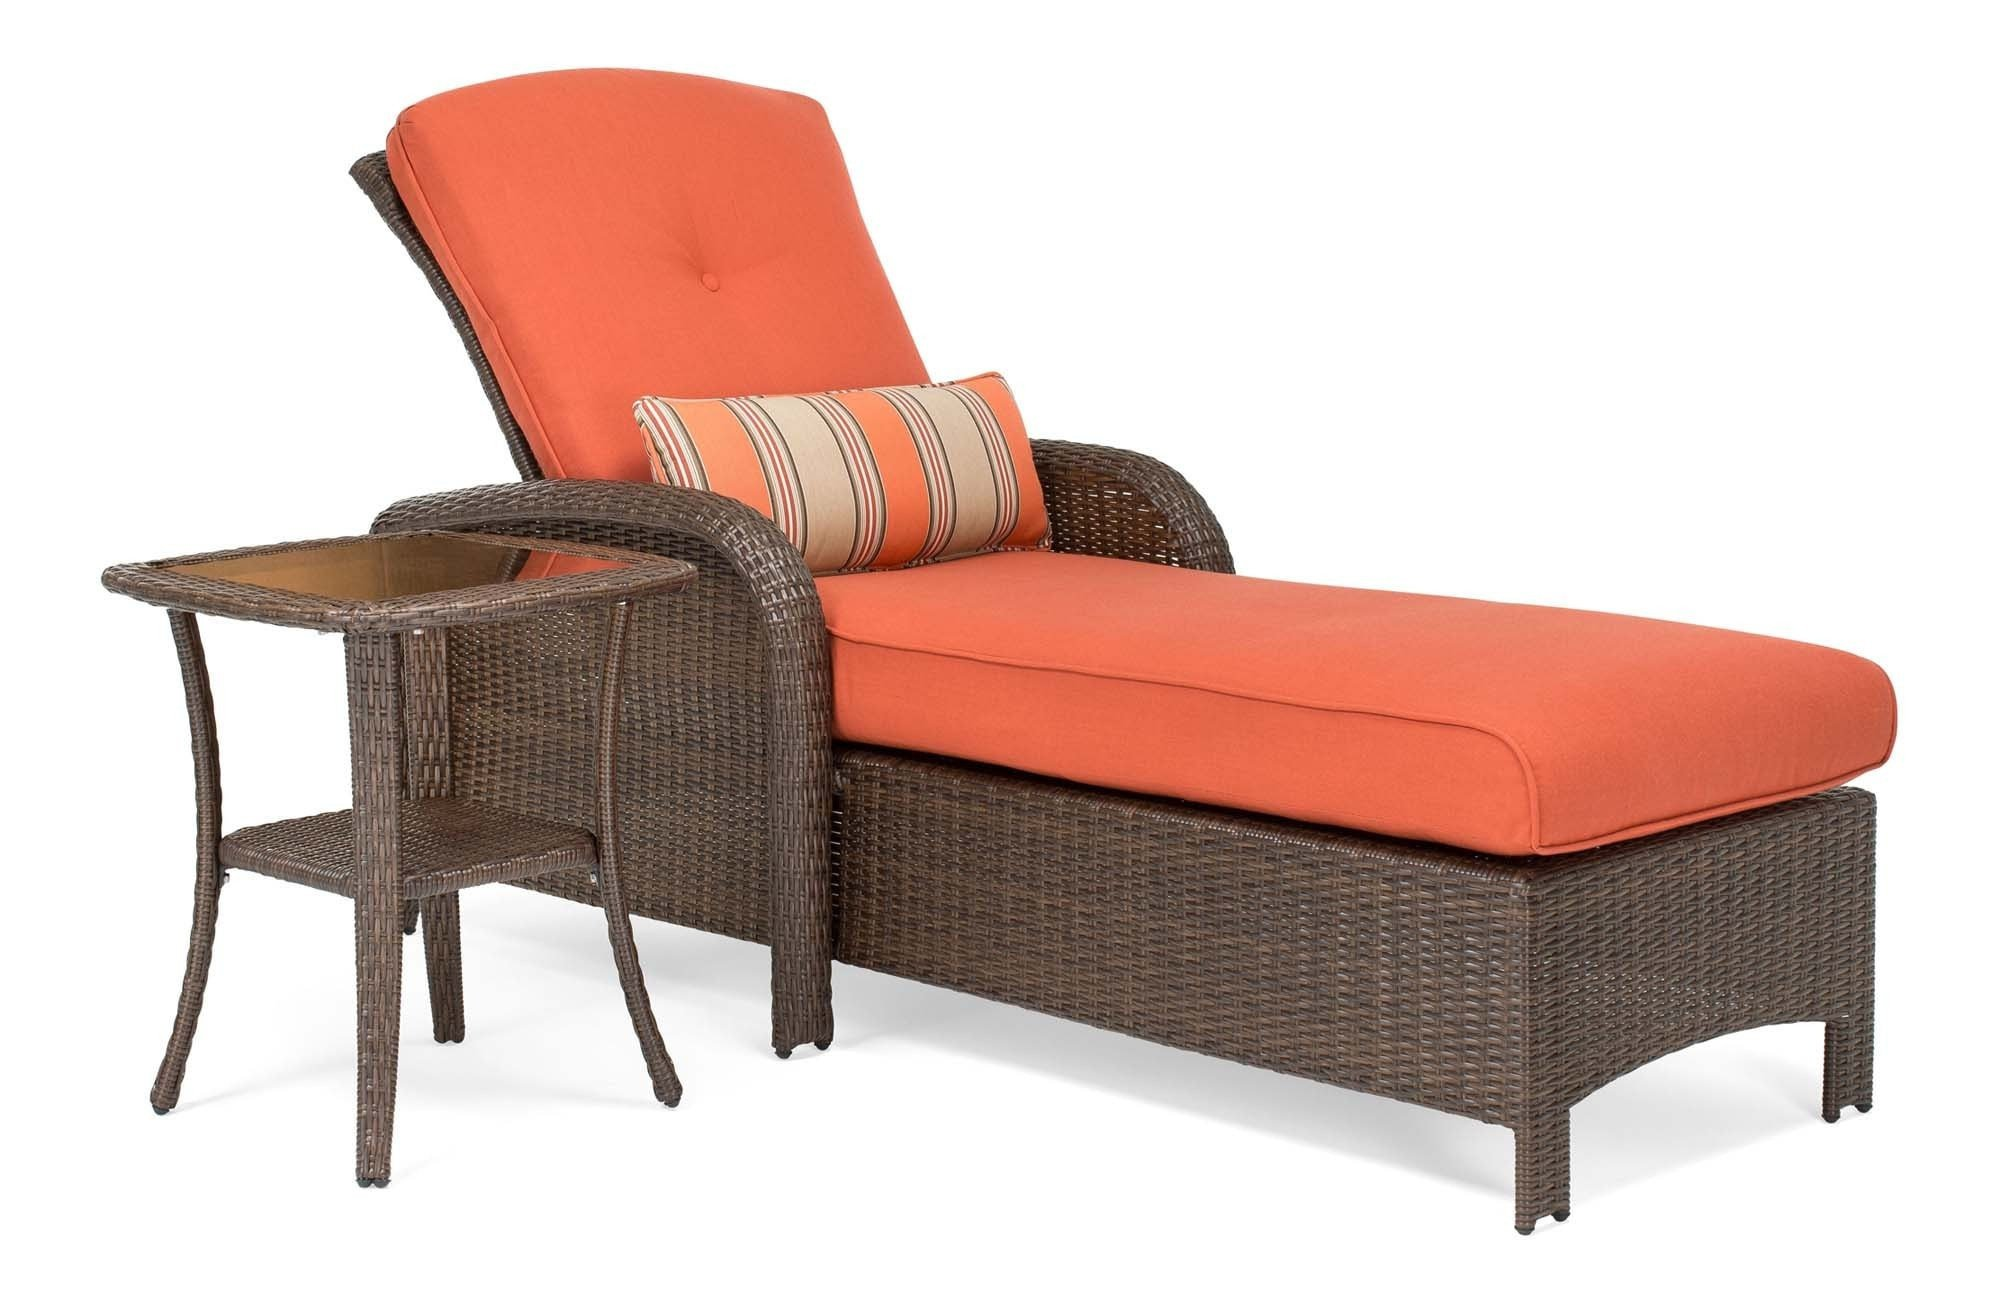 sawyer patio chaise and side table grenadine orange boy outdoor chasiesidetable grendaine tables for small spaces console oriental style floor lamps red living room decor ethan